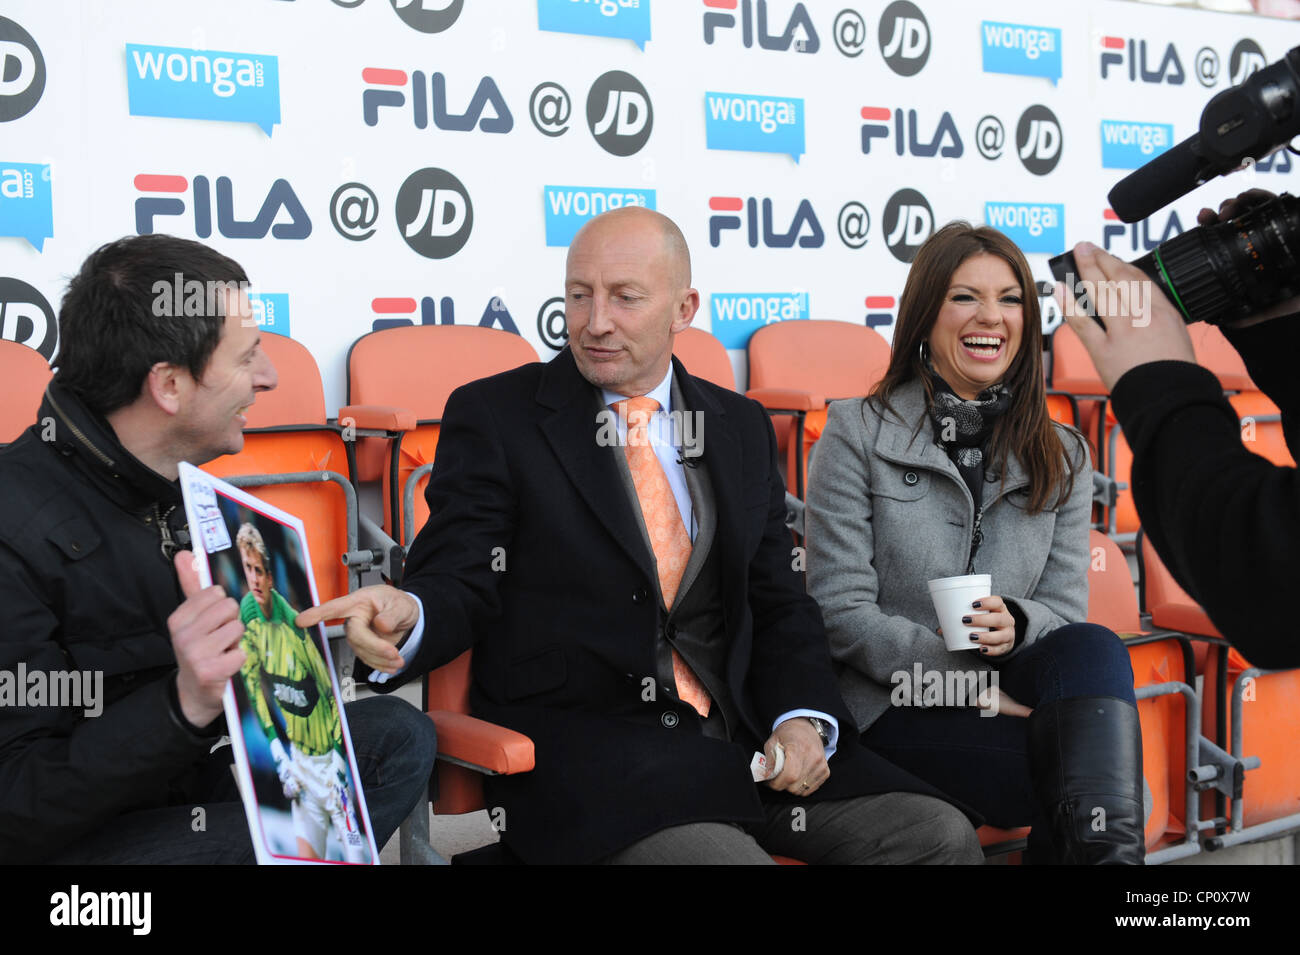 Take It Like A Fan presenters Bianca Westwood and John 'Fenners' Fendley inteviewing Blackpool manager Ian - Stock Image